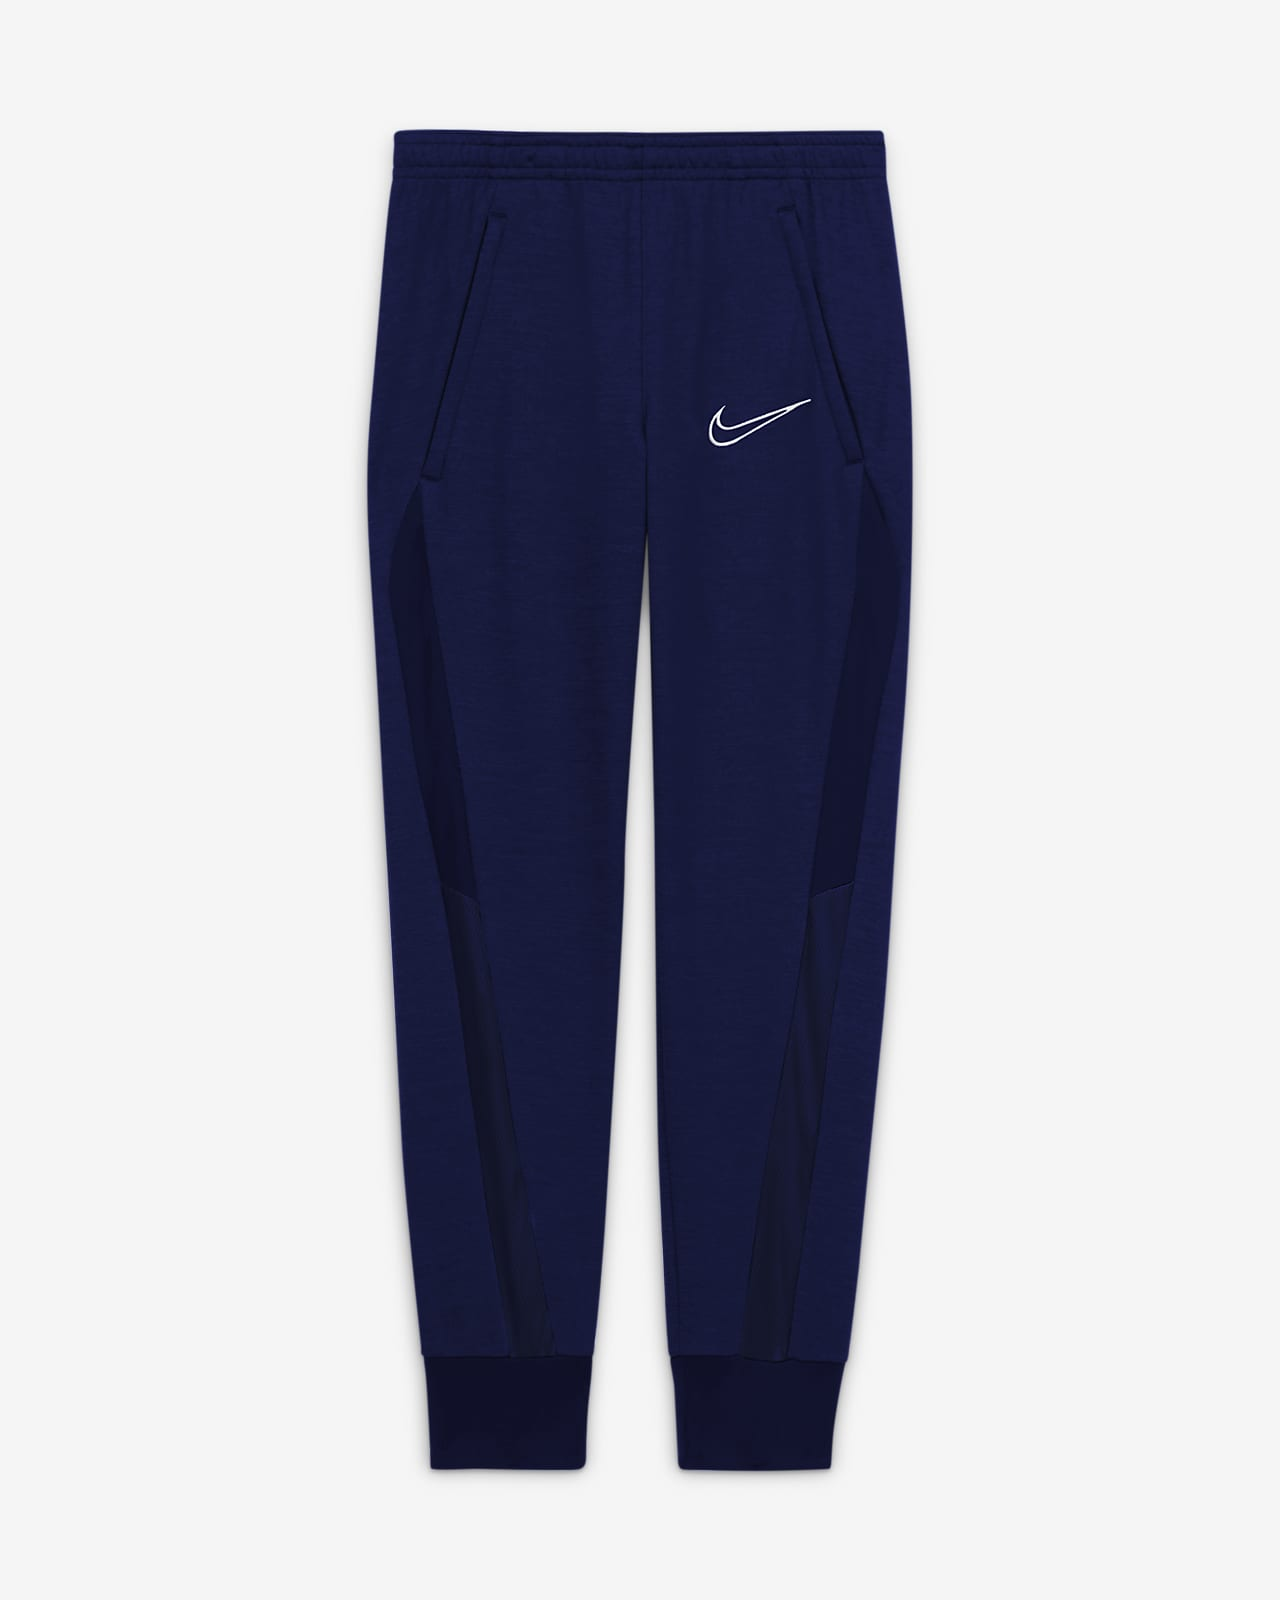 Nike Dri-FIT Academy Older Kids' Knit Football Tracksuit Bottoms